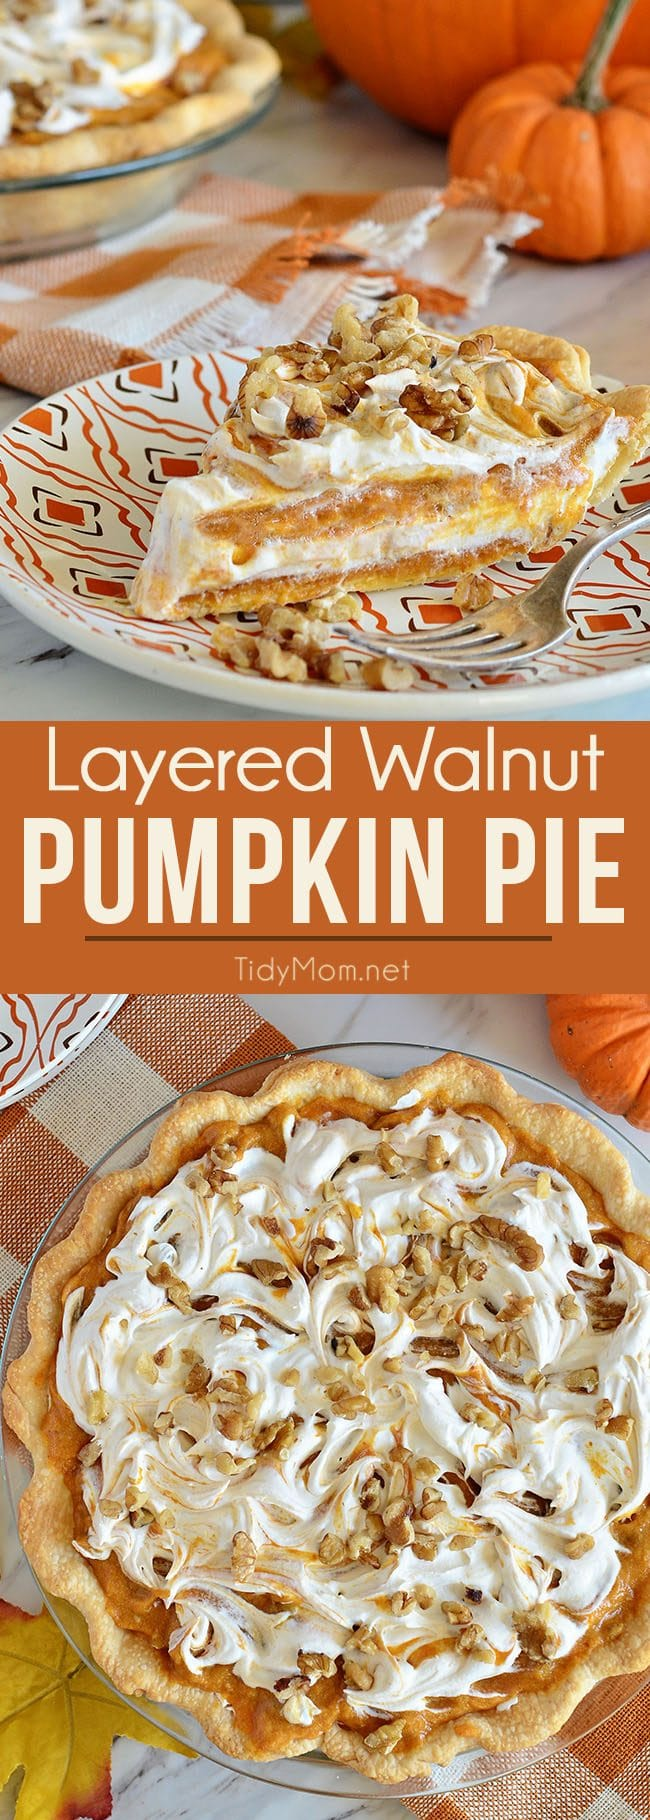 LAYERED WALNUT PUMPKIN PIE has been a long tradition in our family for Thanksgiving. This family favorite pumpkin pie recipe that was handed down to me by my grandpa 30+ years ago. This EASY recipe not your ordinary pumpkin pie, it'sa light and fluffy, scrumptious, cold creamy pumpkin pie! A perfect alternative to regular pumpkin pie for Thanksgiving or Christmas dessert. PRINT the recipe at Tidymom.net